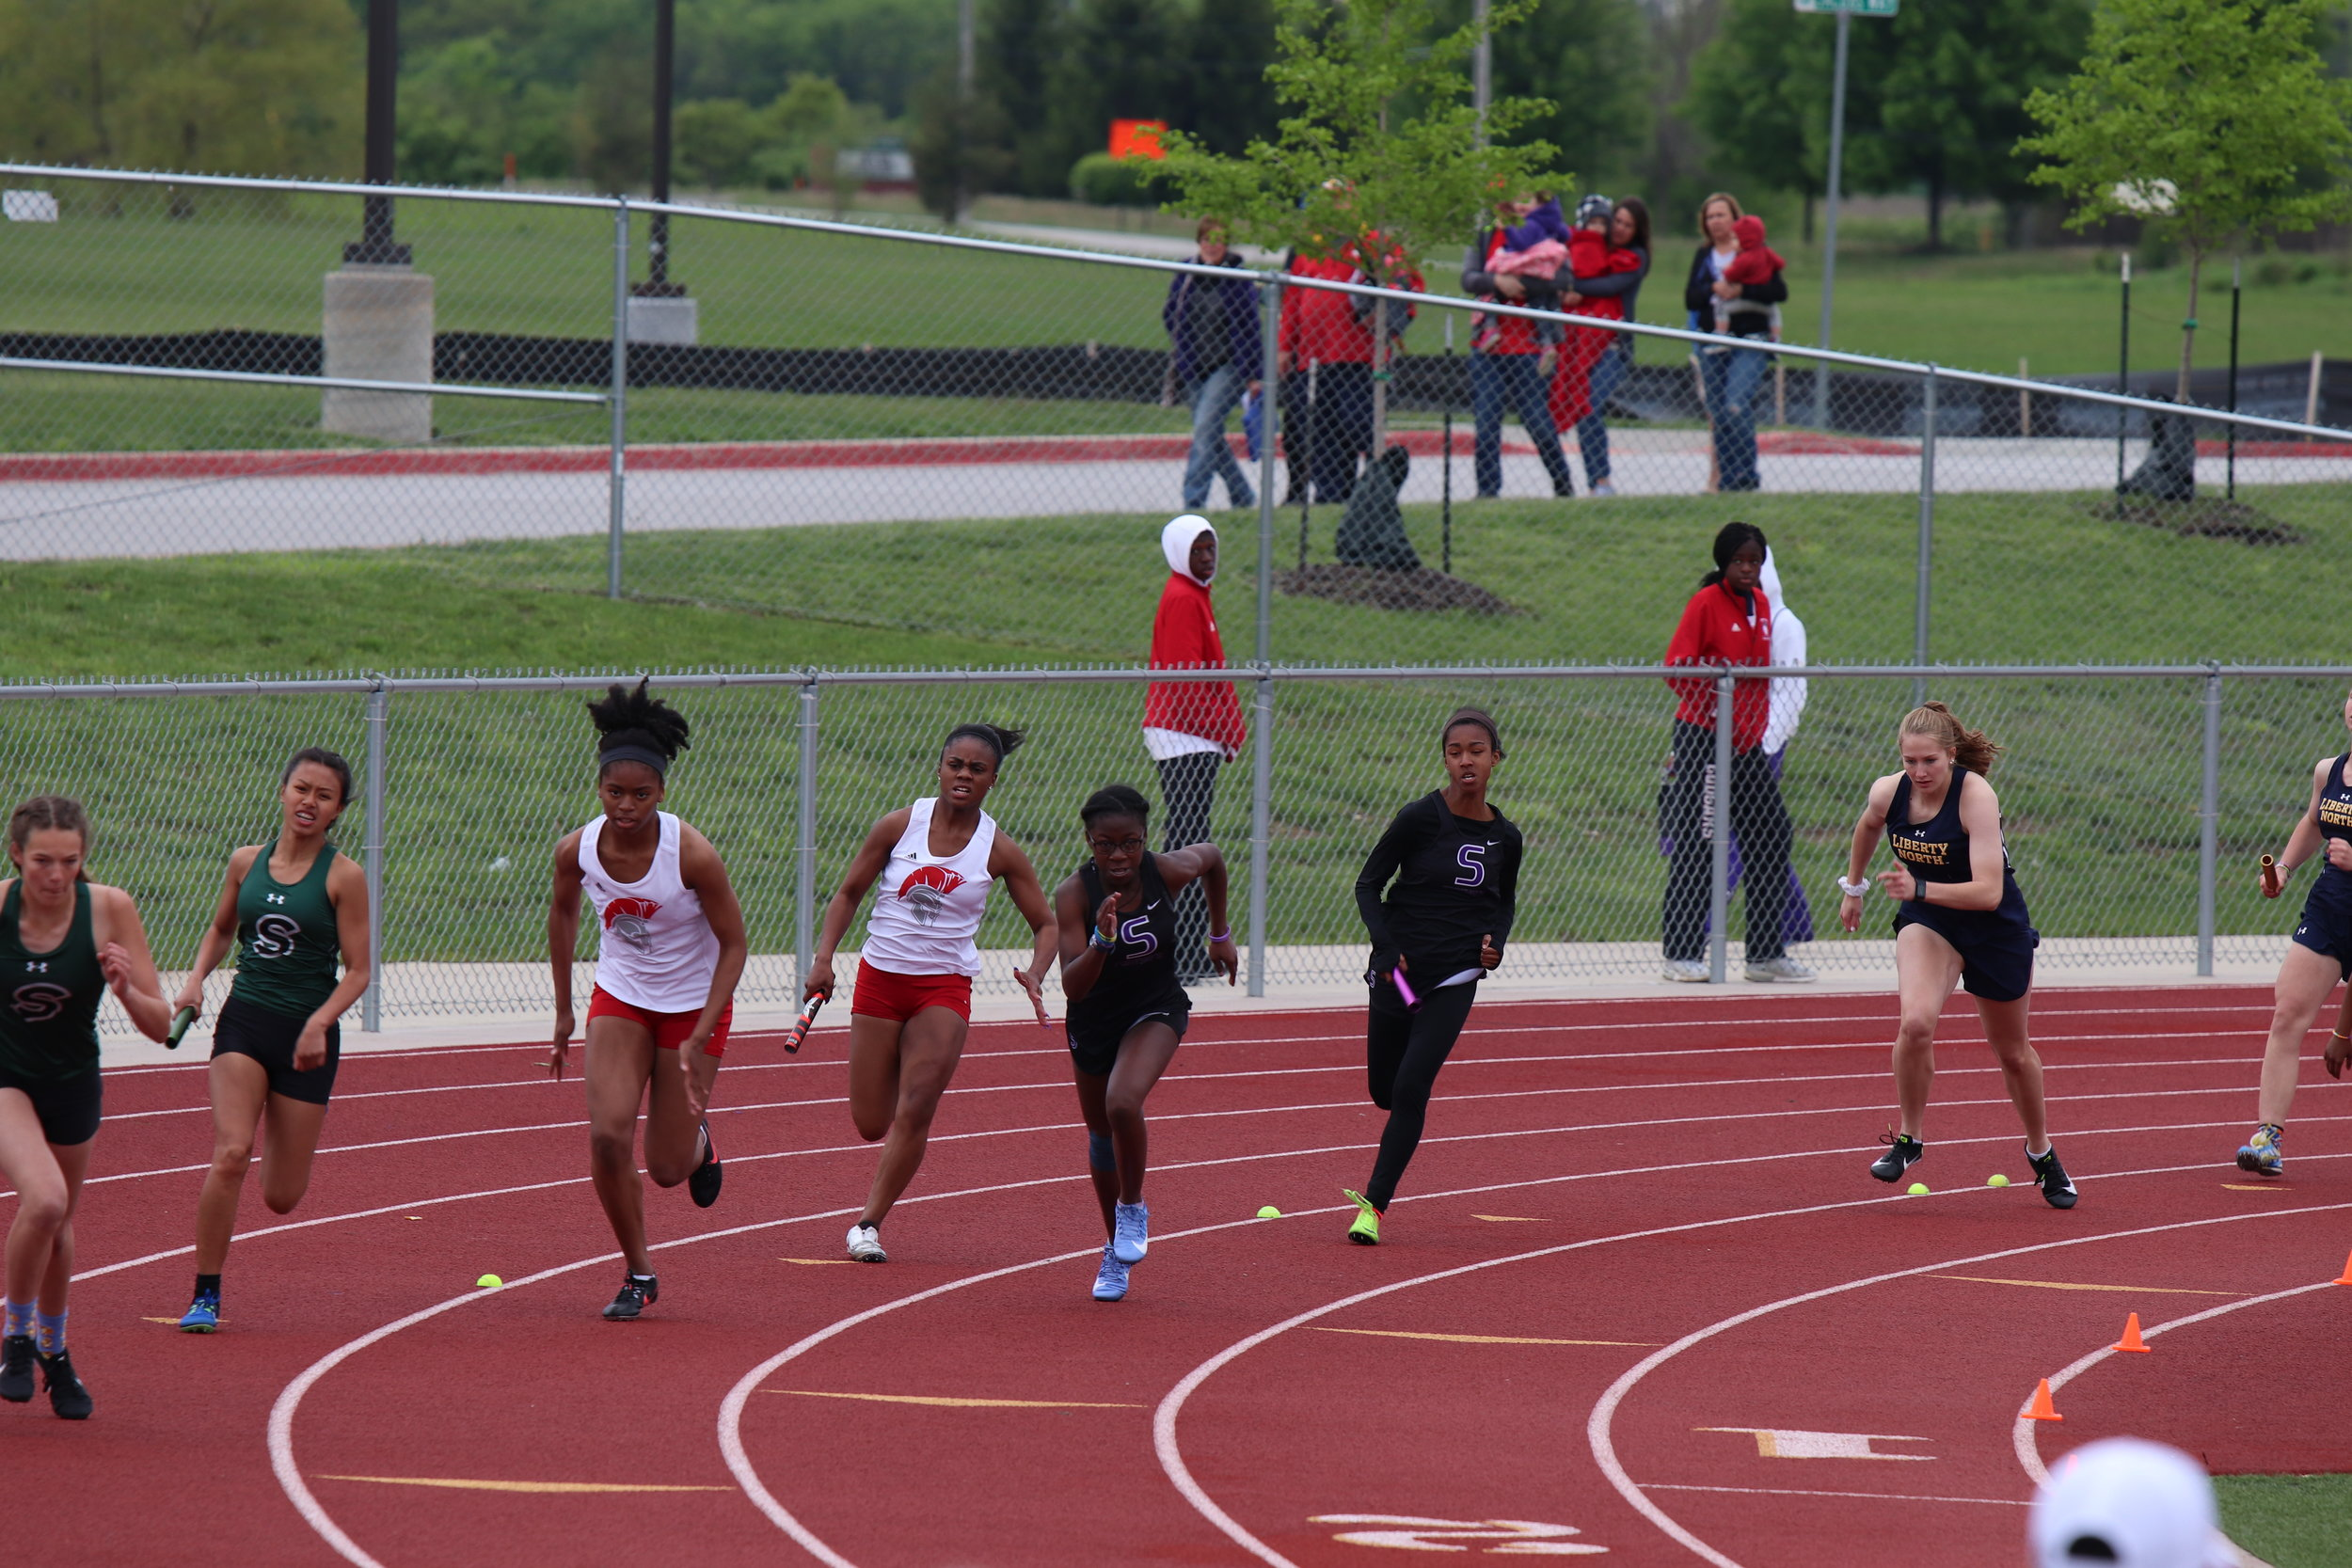 CODY THORN/Citizen photo Park Hill's Jordan Birmingham, third from right, gets ready to hand the baton to her sister, Kristen Birmingham, during the 4x100-meter relay at the Class 5 District 8 meet. Next to Park Hill is Park Hill South's Alex Hammonds, far right, as she prepares to get the baton to Nakiya Woodley.